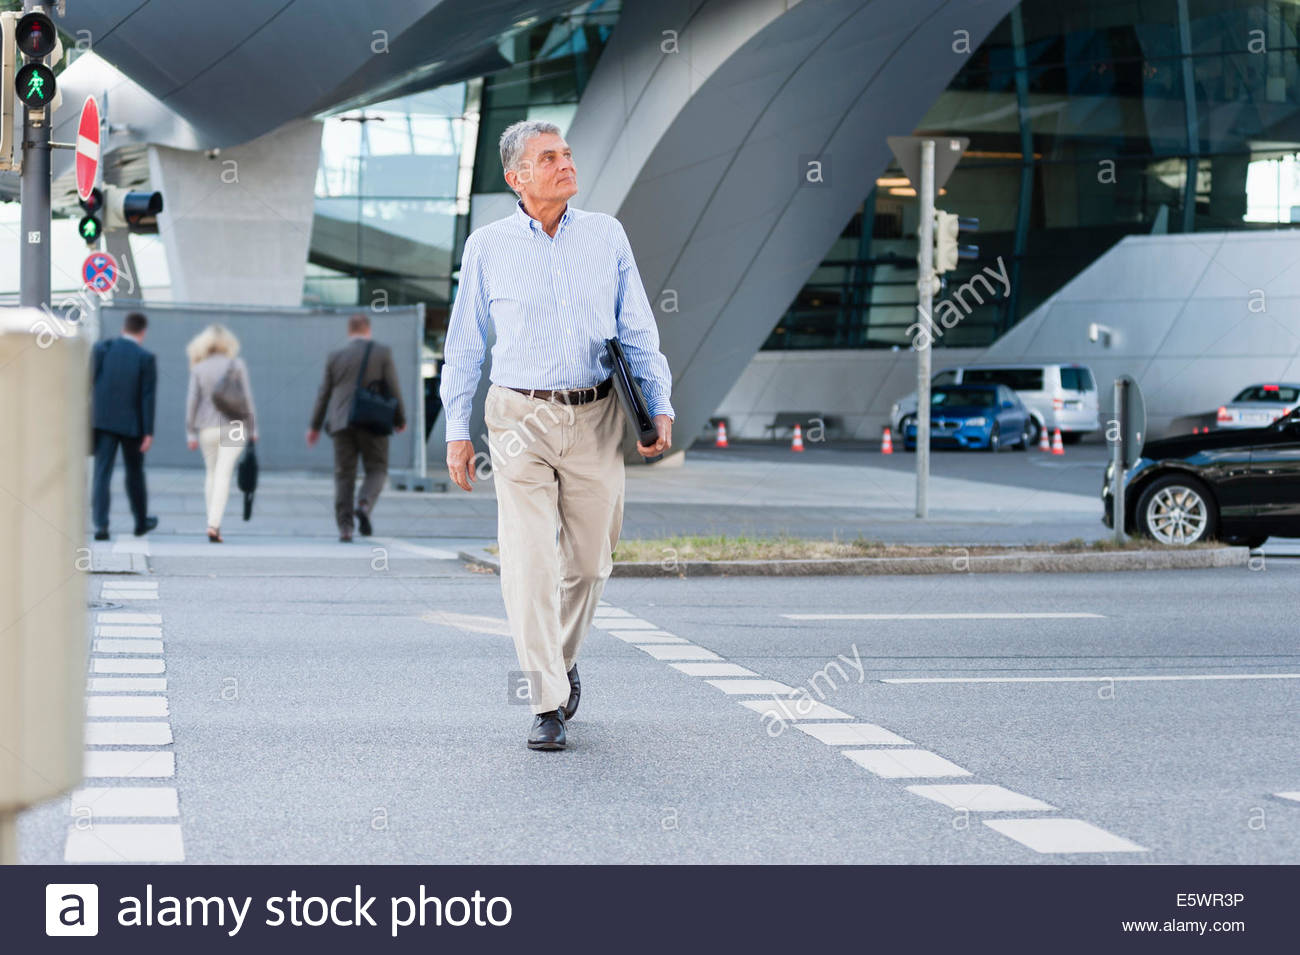 Senior adult businessman walking down street Photo Stock